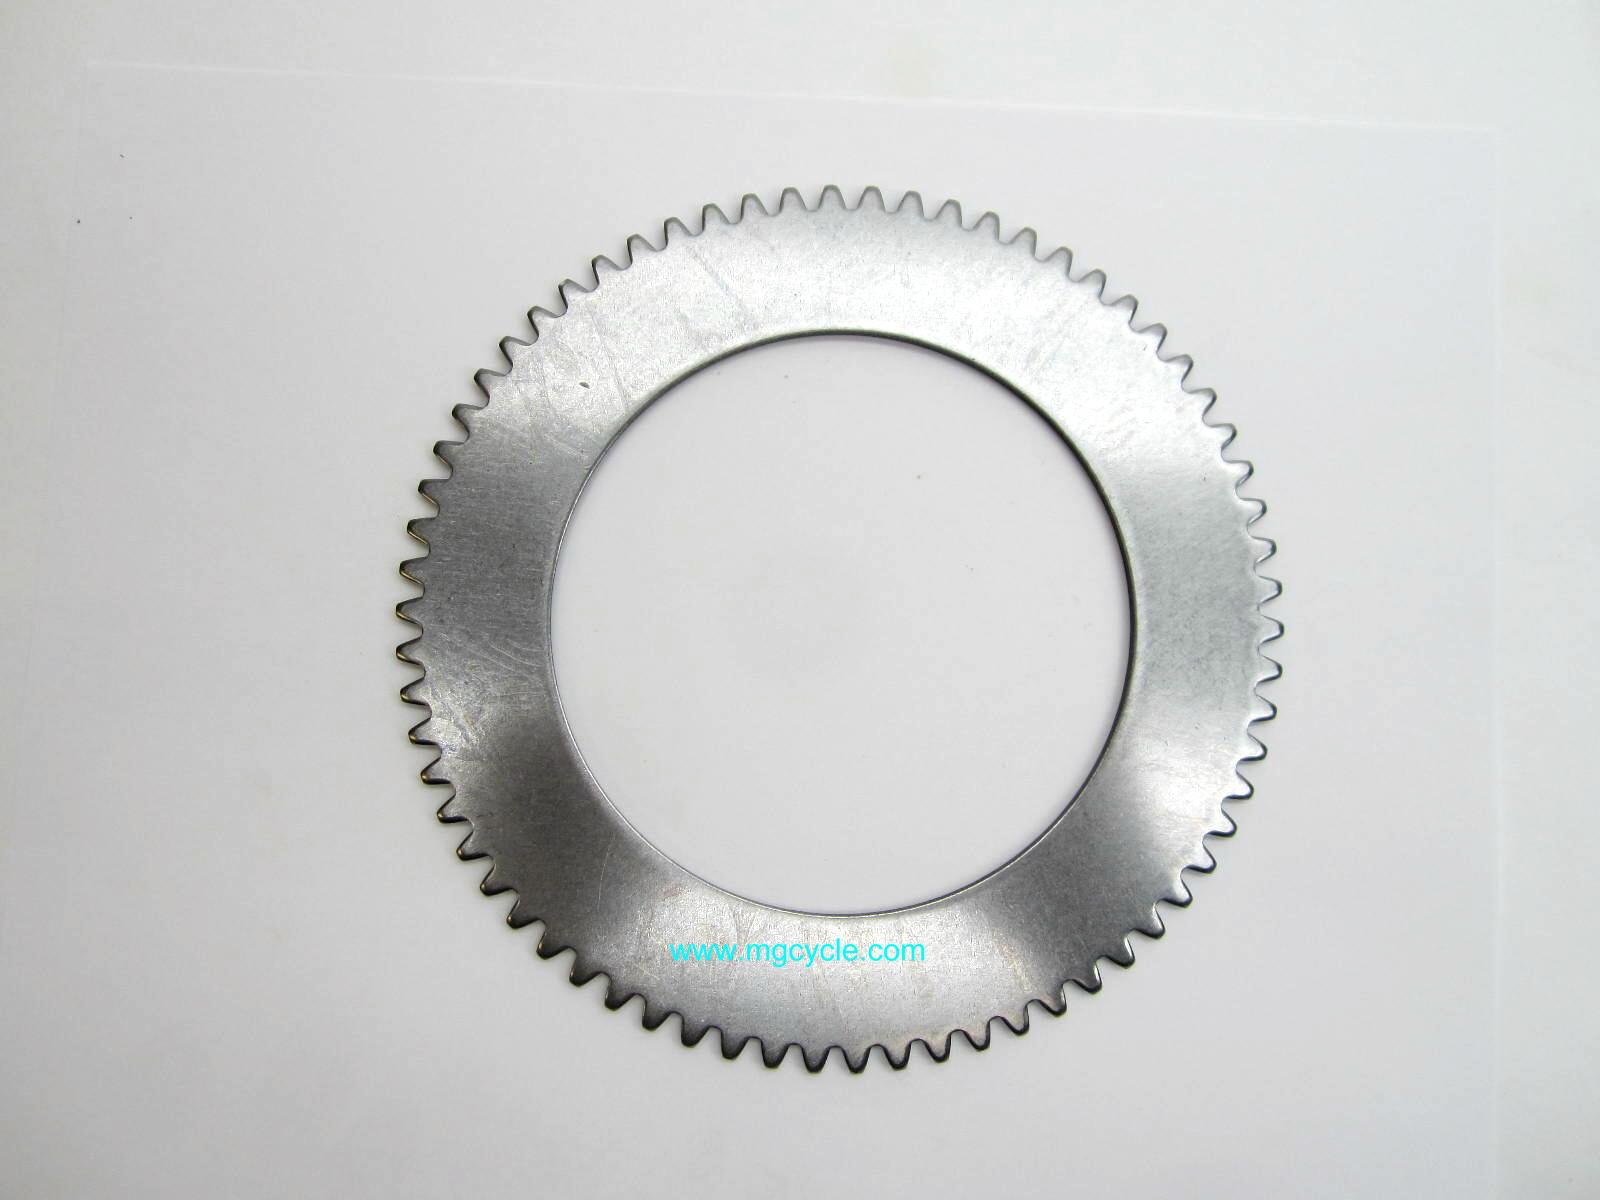 Clutch intermediate plate, middle plate alternate for GU12083200